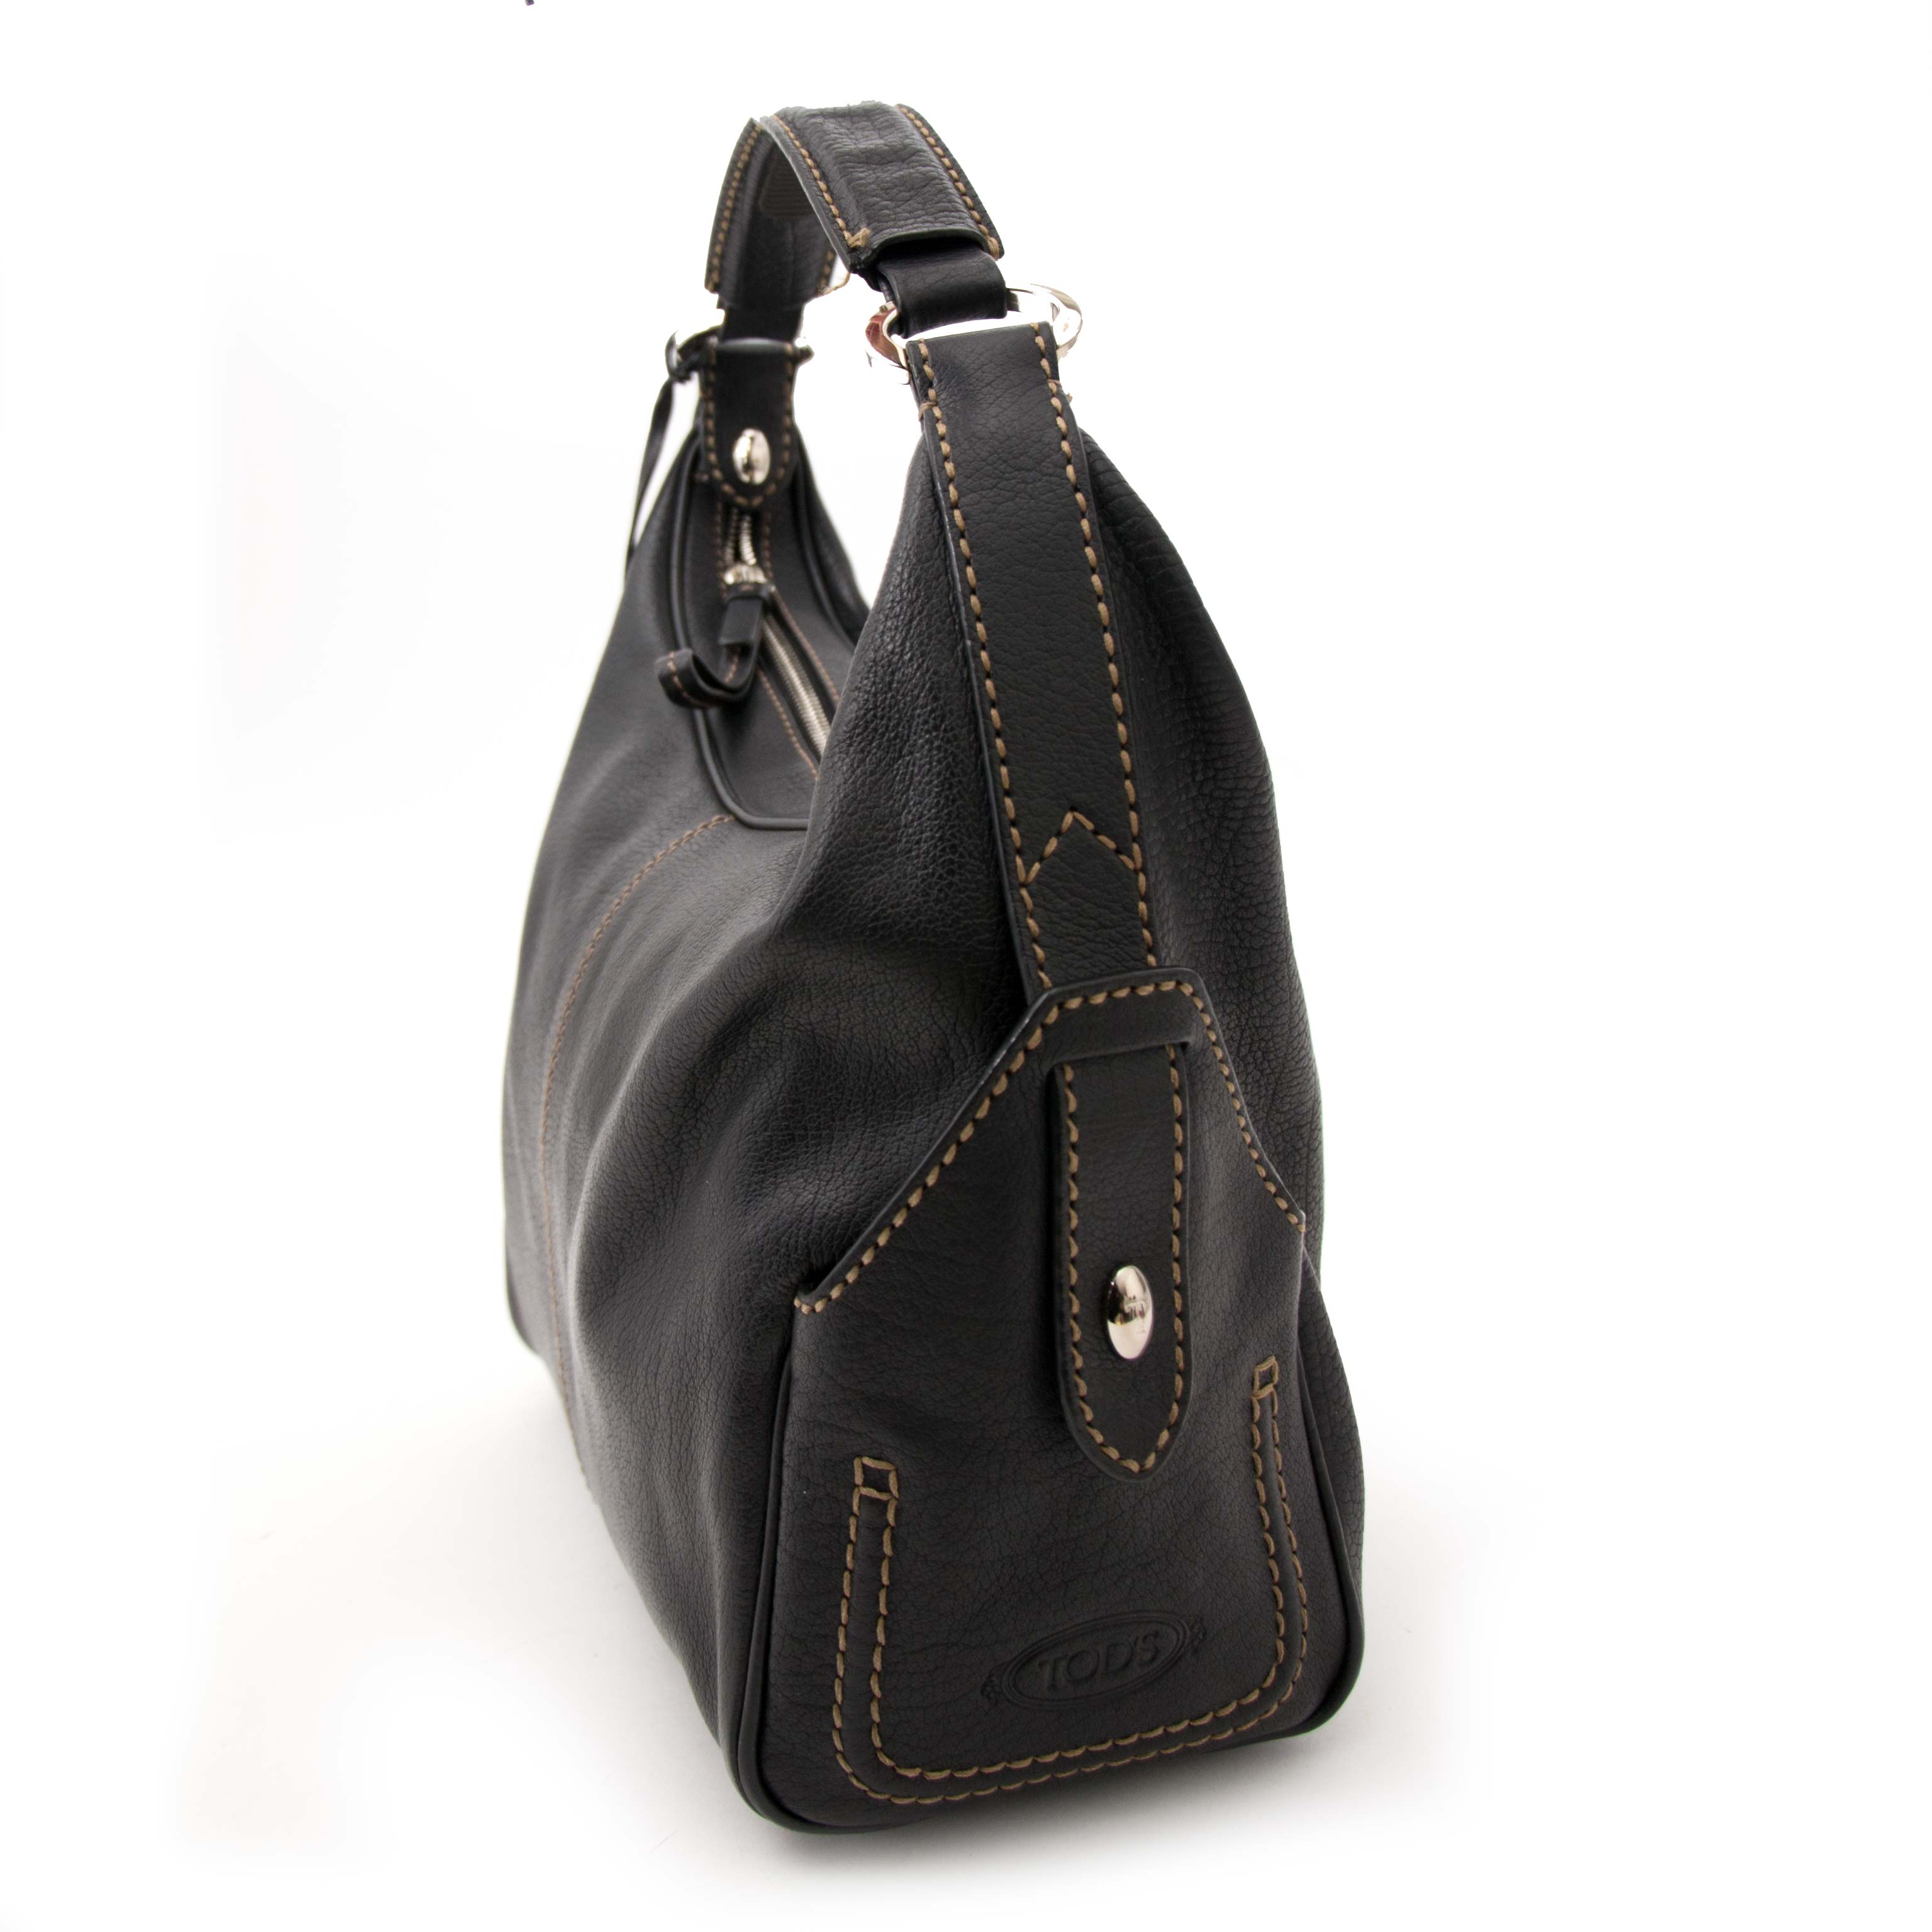 looking for a secondhand Tod's Black Leather Handbag